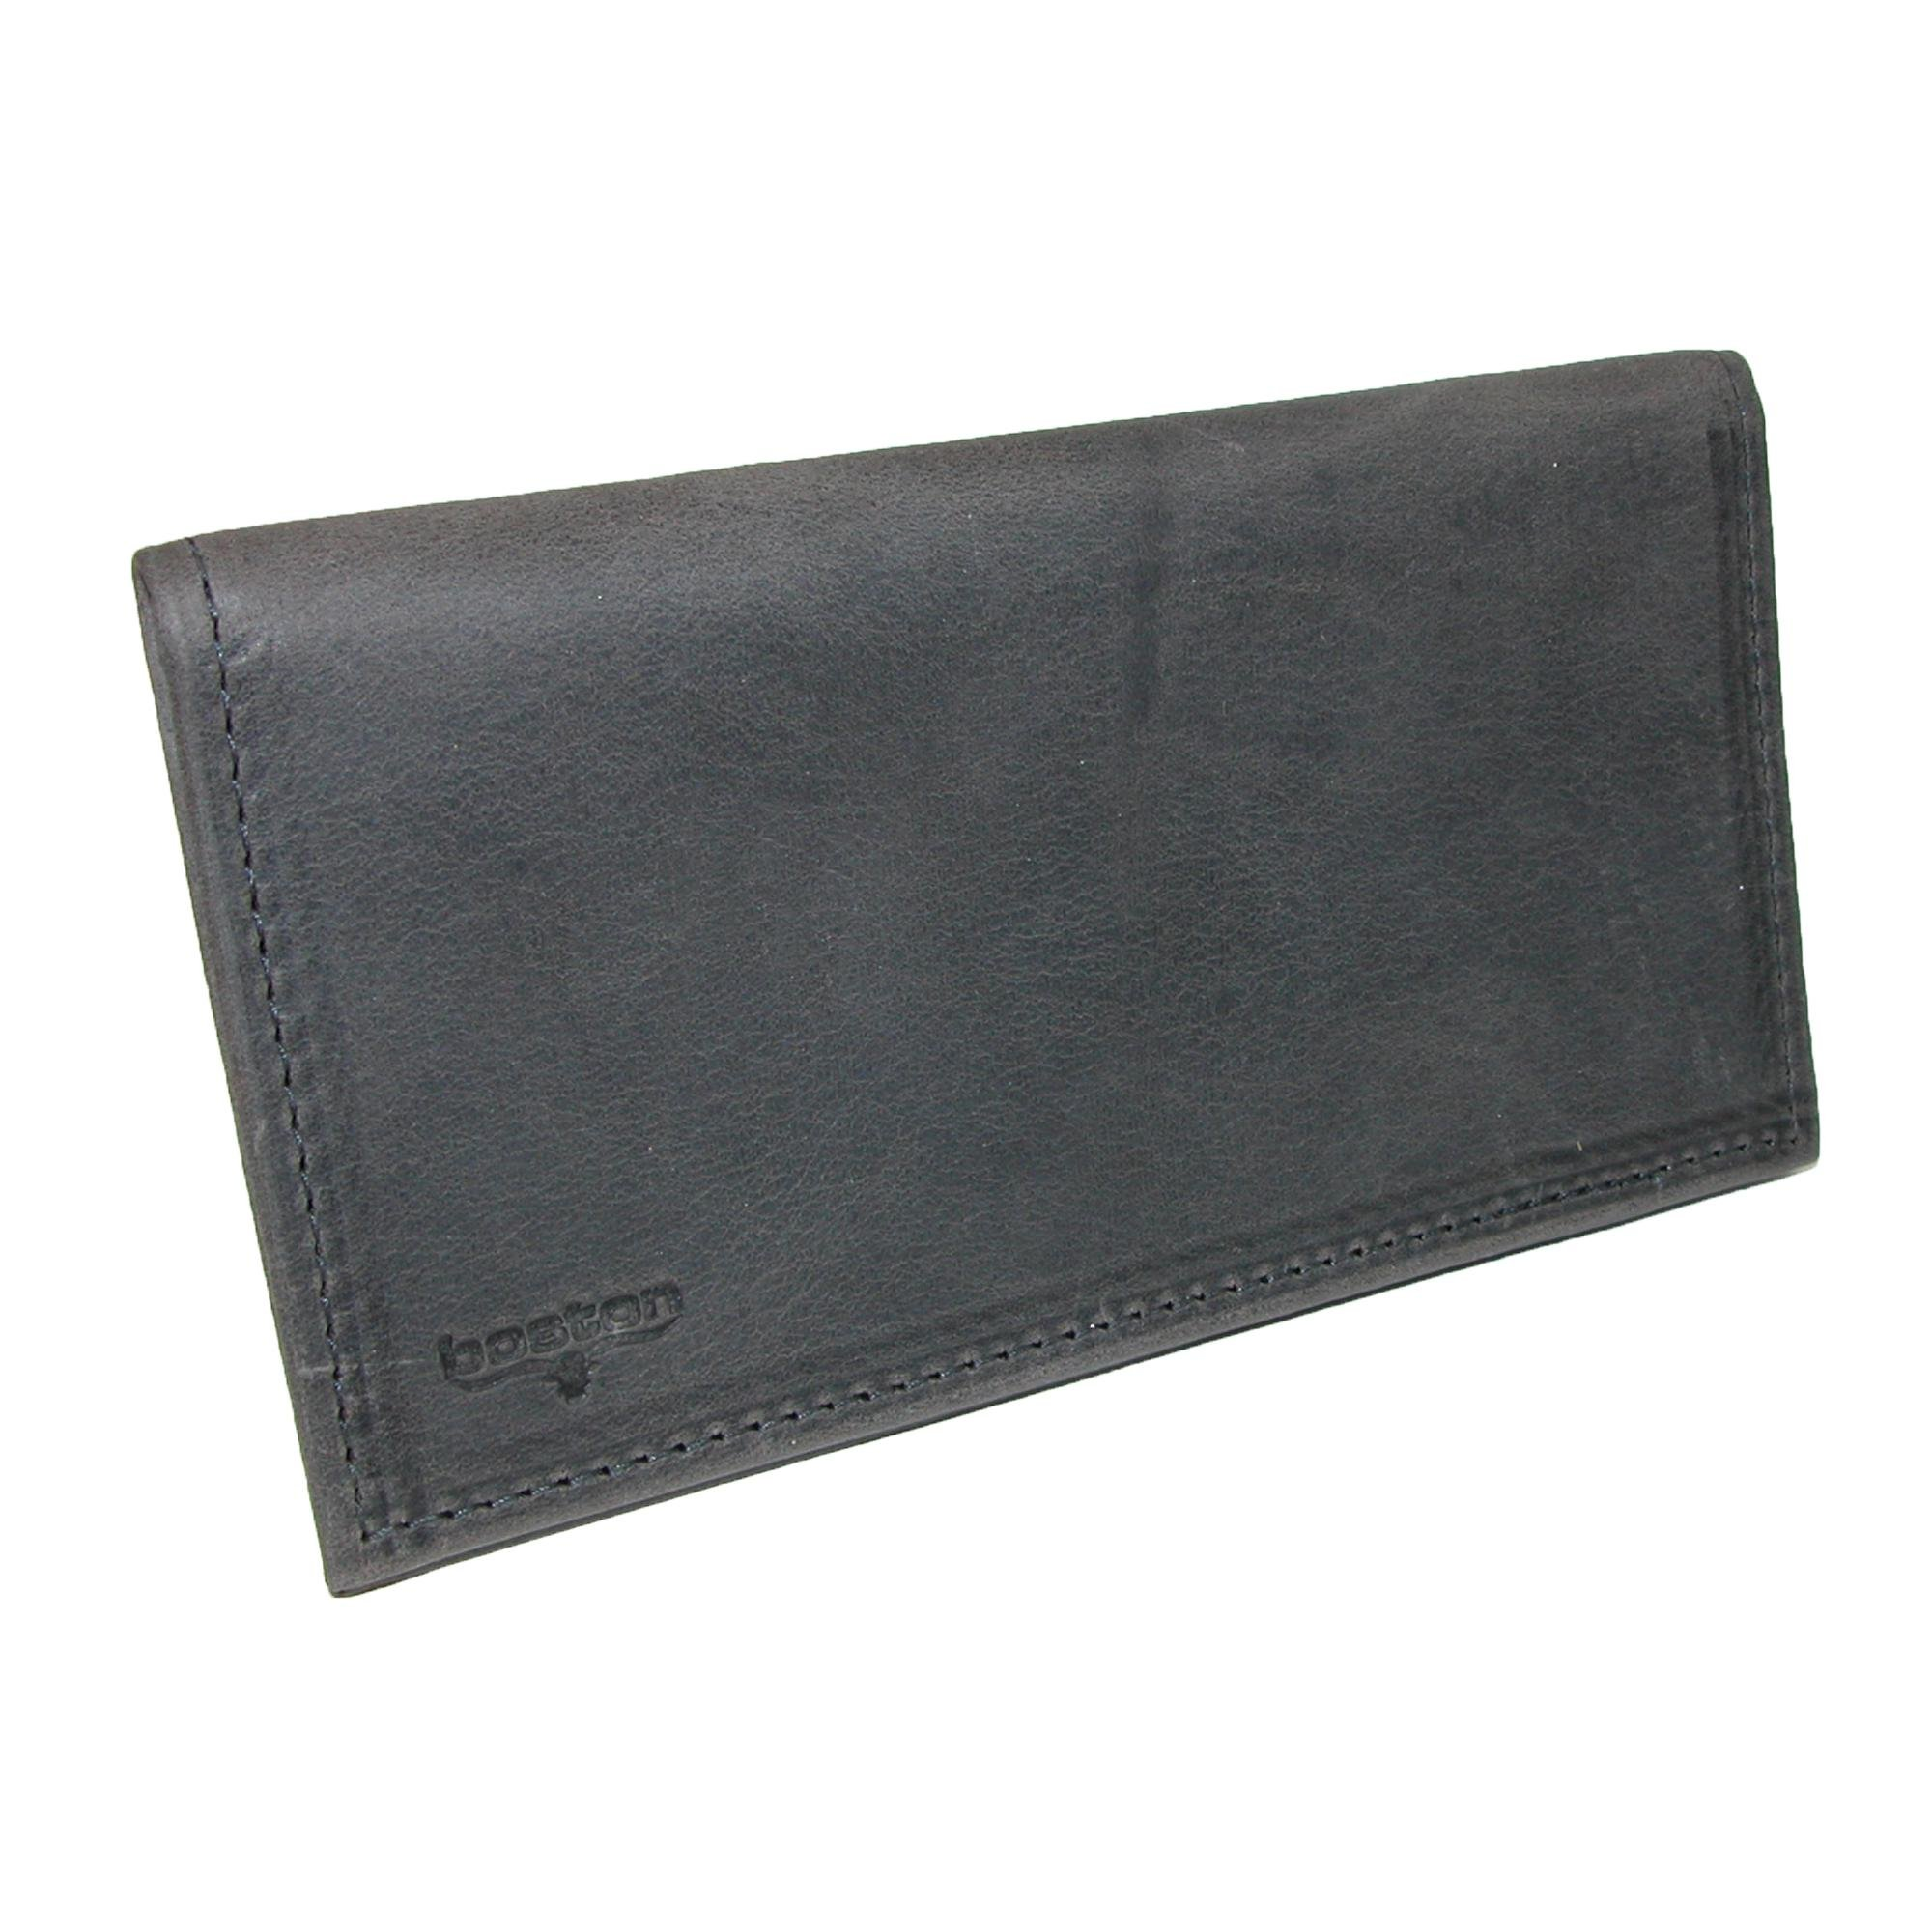 Boston Leather Distressed Leather Checkbook Cover, Dark Grey